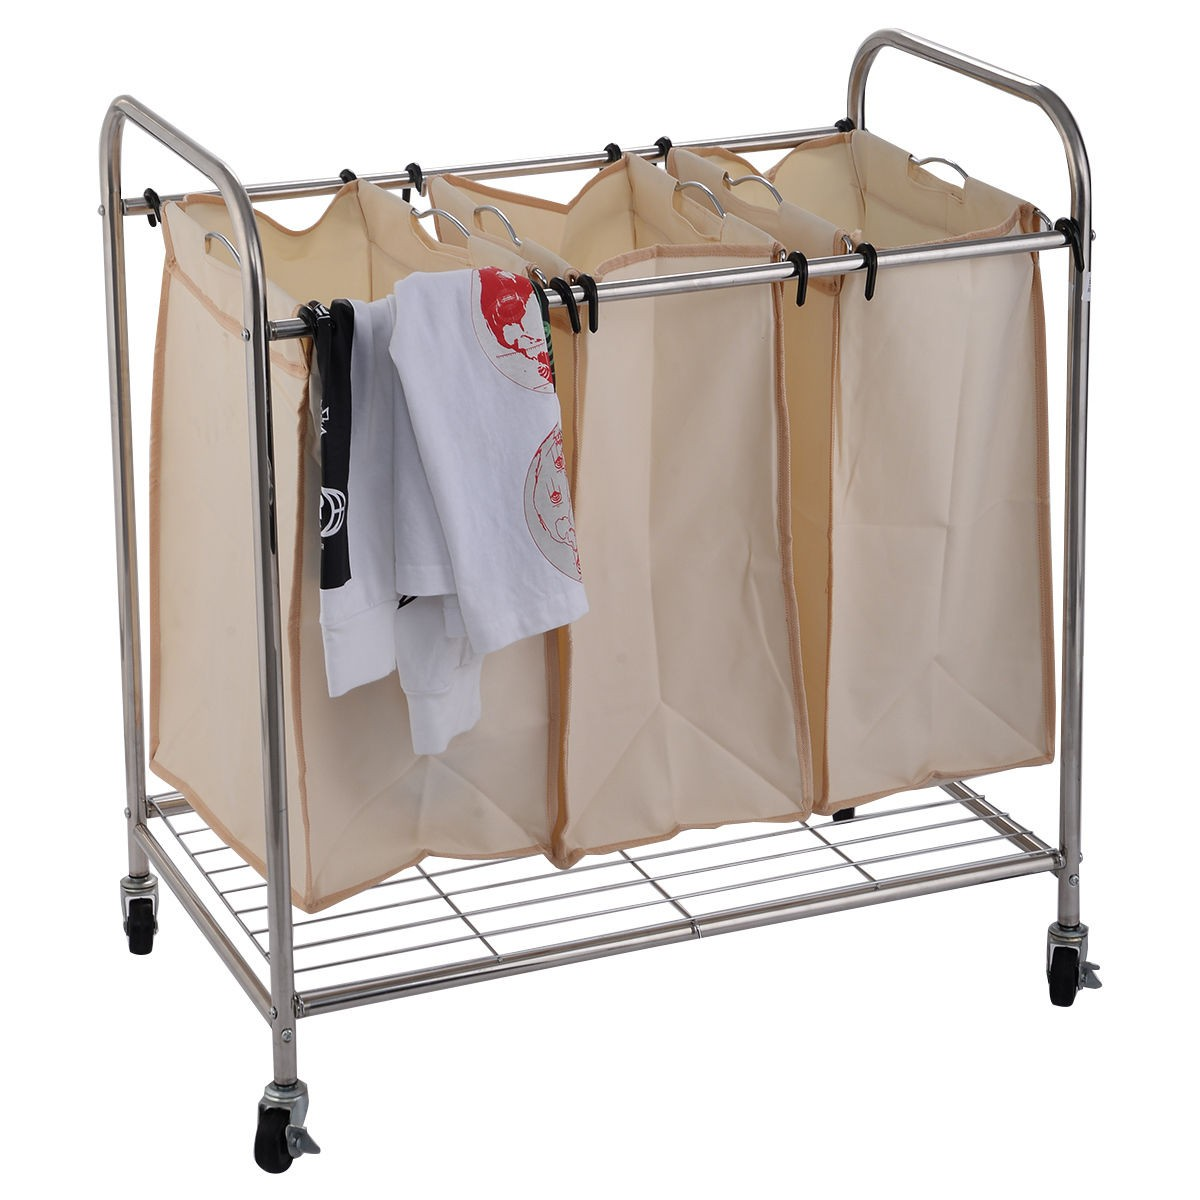 New 3 Bag Laundry Rolling Cart Basket Hamper Sorter